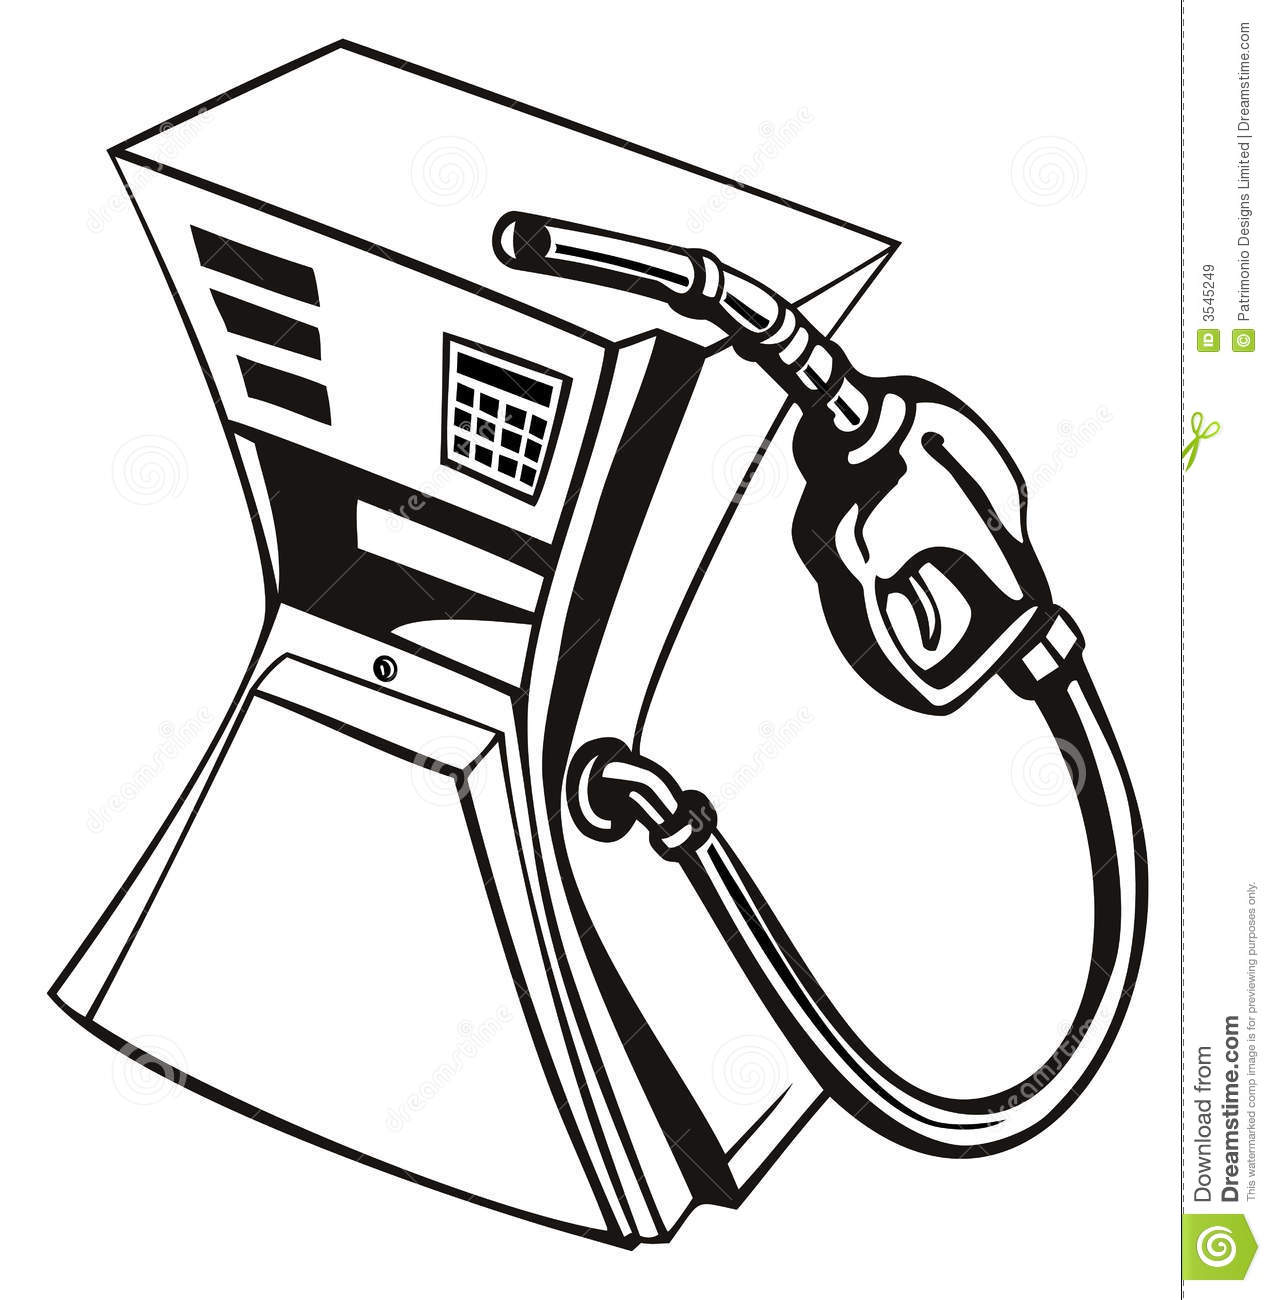 Gas Pump Squeezed Royalty Free Stock Images